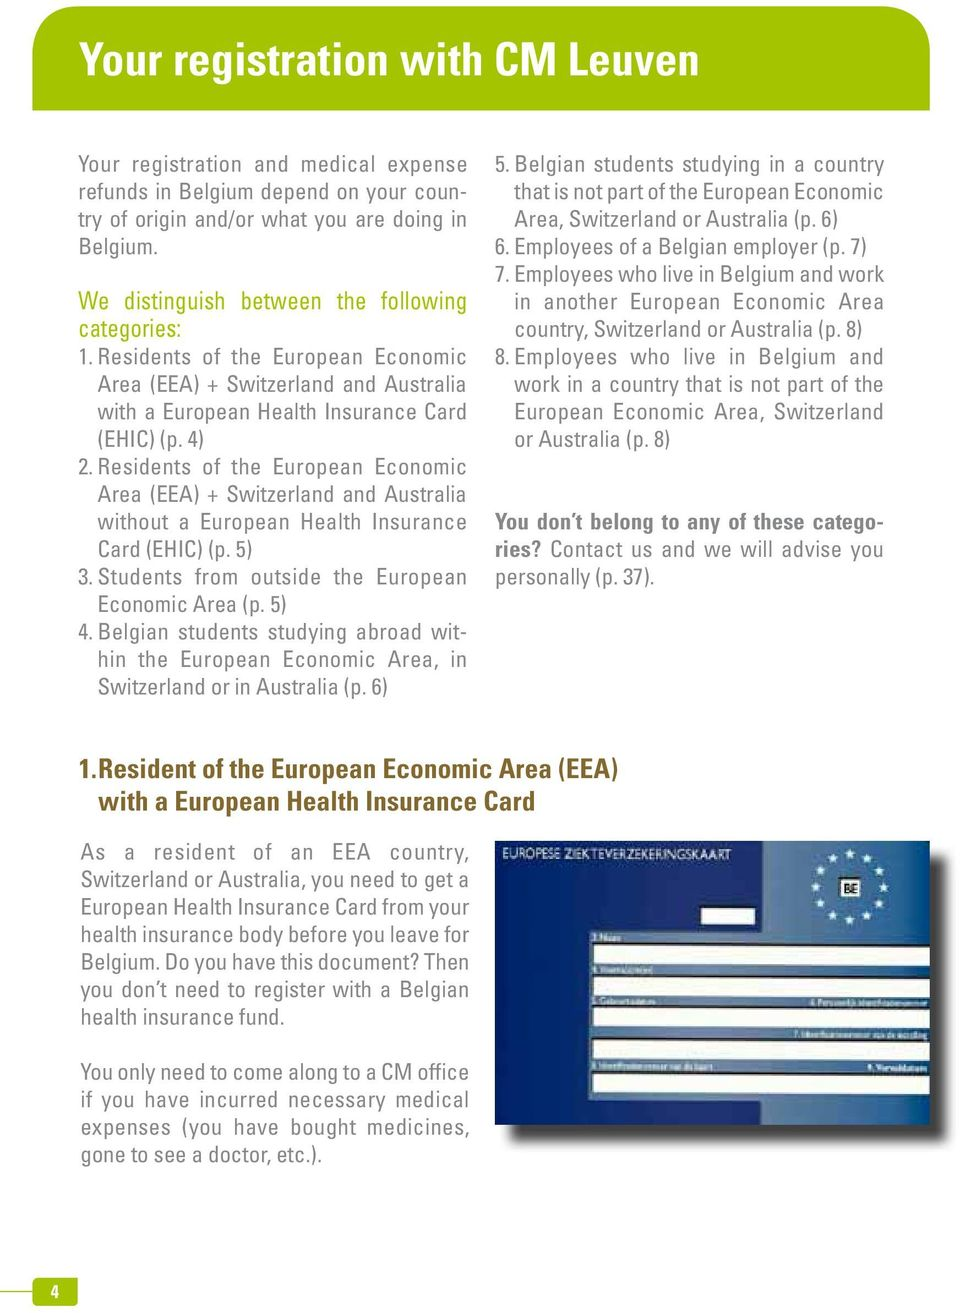 Residents of the European Economic Area (EEA) + Switzerland and Australia without a European Health Insurance Card (EHIC) (p. 5) 3. Students from outside the European Economic Area (p. 5) 4.